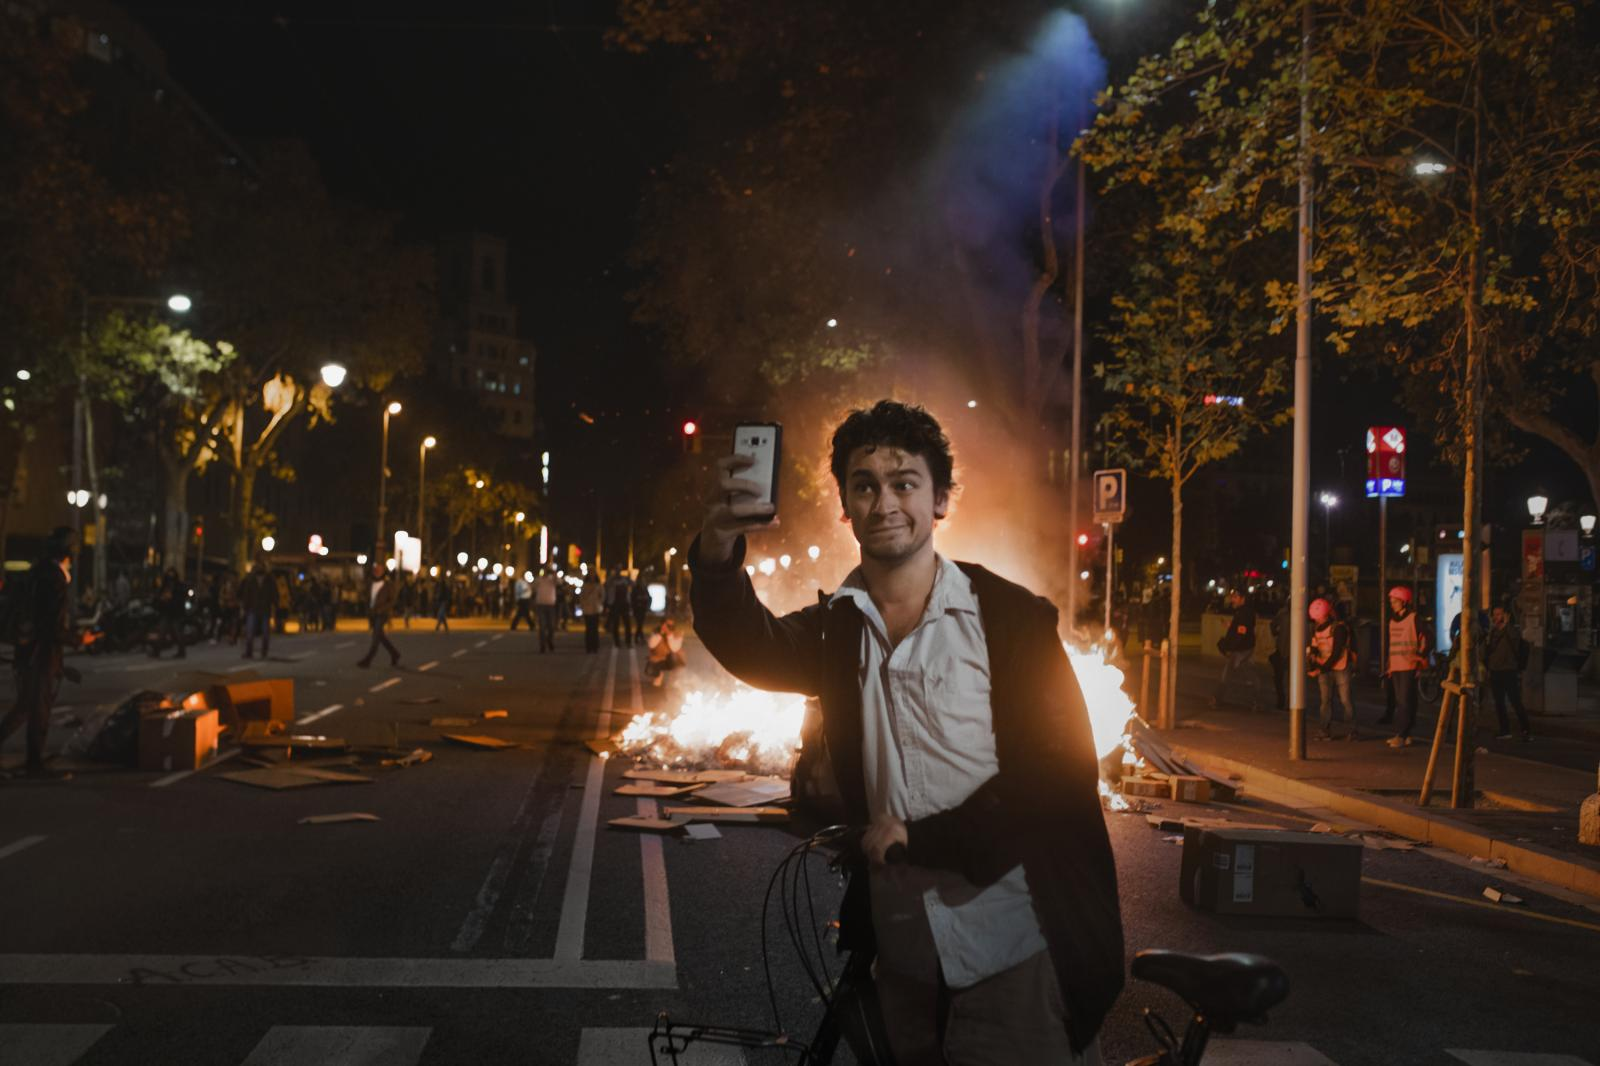 """A young man takes a selfie while the center of Barcelona was tense at various points of Passeig de Gracia, Pau Claris, and Diagonale because of police and protesters' actions to deal with the burning of some containers and the creation of barricades to contain the police advance. The riots in Barcelona have left significant damages to street furniture. Fomento Ministry counted the cost at millions of euros. The images of concentrations have also provoked the teasing of many citizens. Have been criticized for the exhibitionism, on many occasions in a comic tone, for the conditions in which youths are found in the photos on social networks. Especially when students occupied Plaza Universidad with camping tents and the """"spokespersons"""" have posted a video asking families, businesses and individuals to help their 'demonstration' by bringing them solidarity and various products (tents, garbage bags) with the specification: """"cookies and chocolate no, we have enough"""". (October 26,2019. Barcelona, Spain)"""